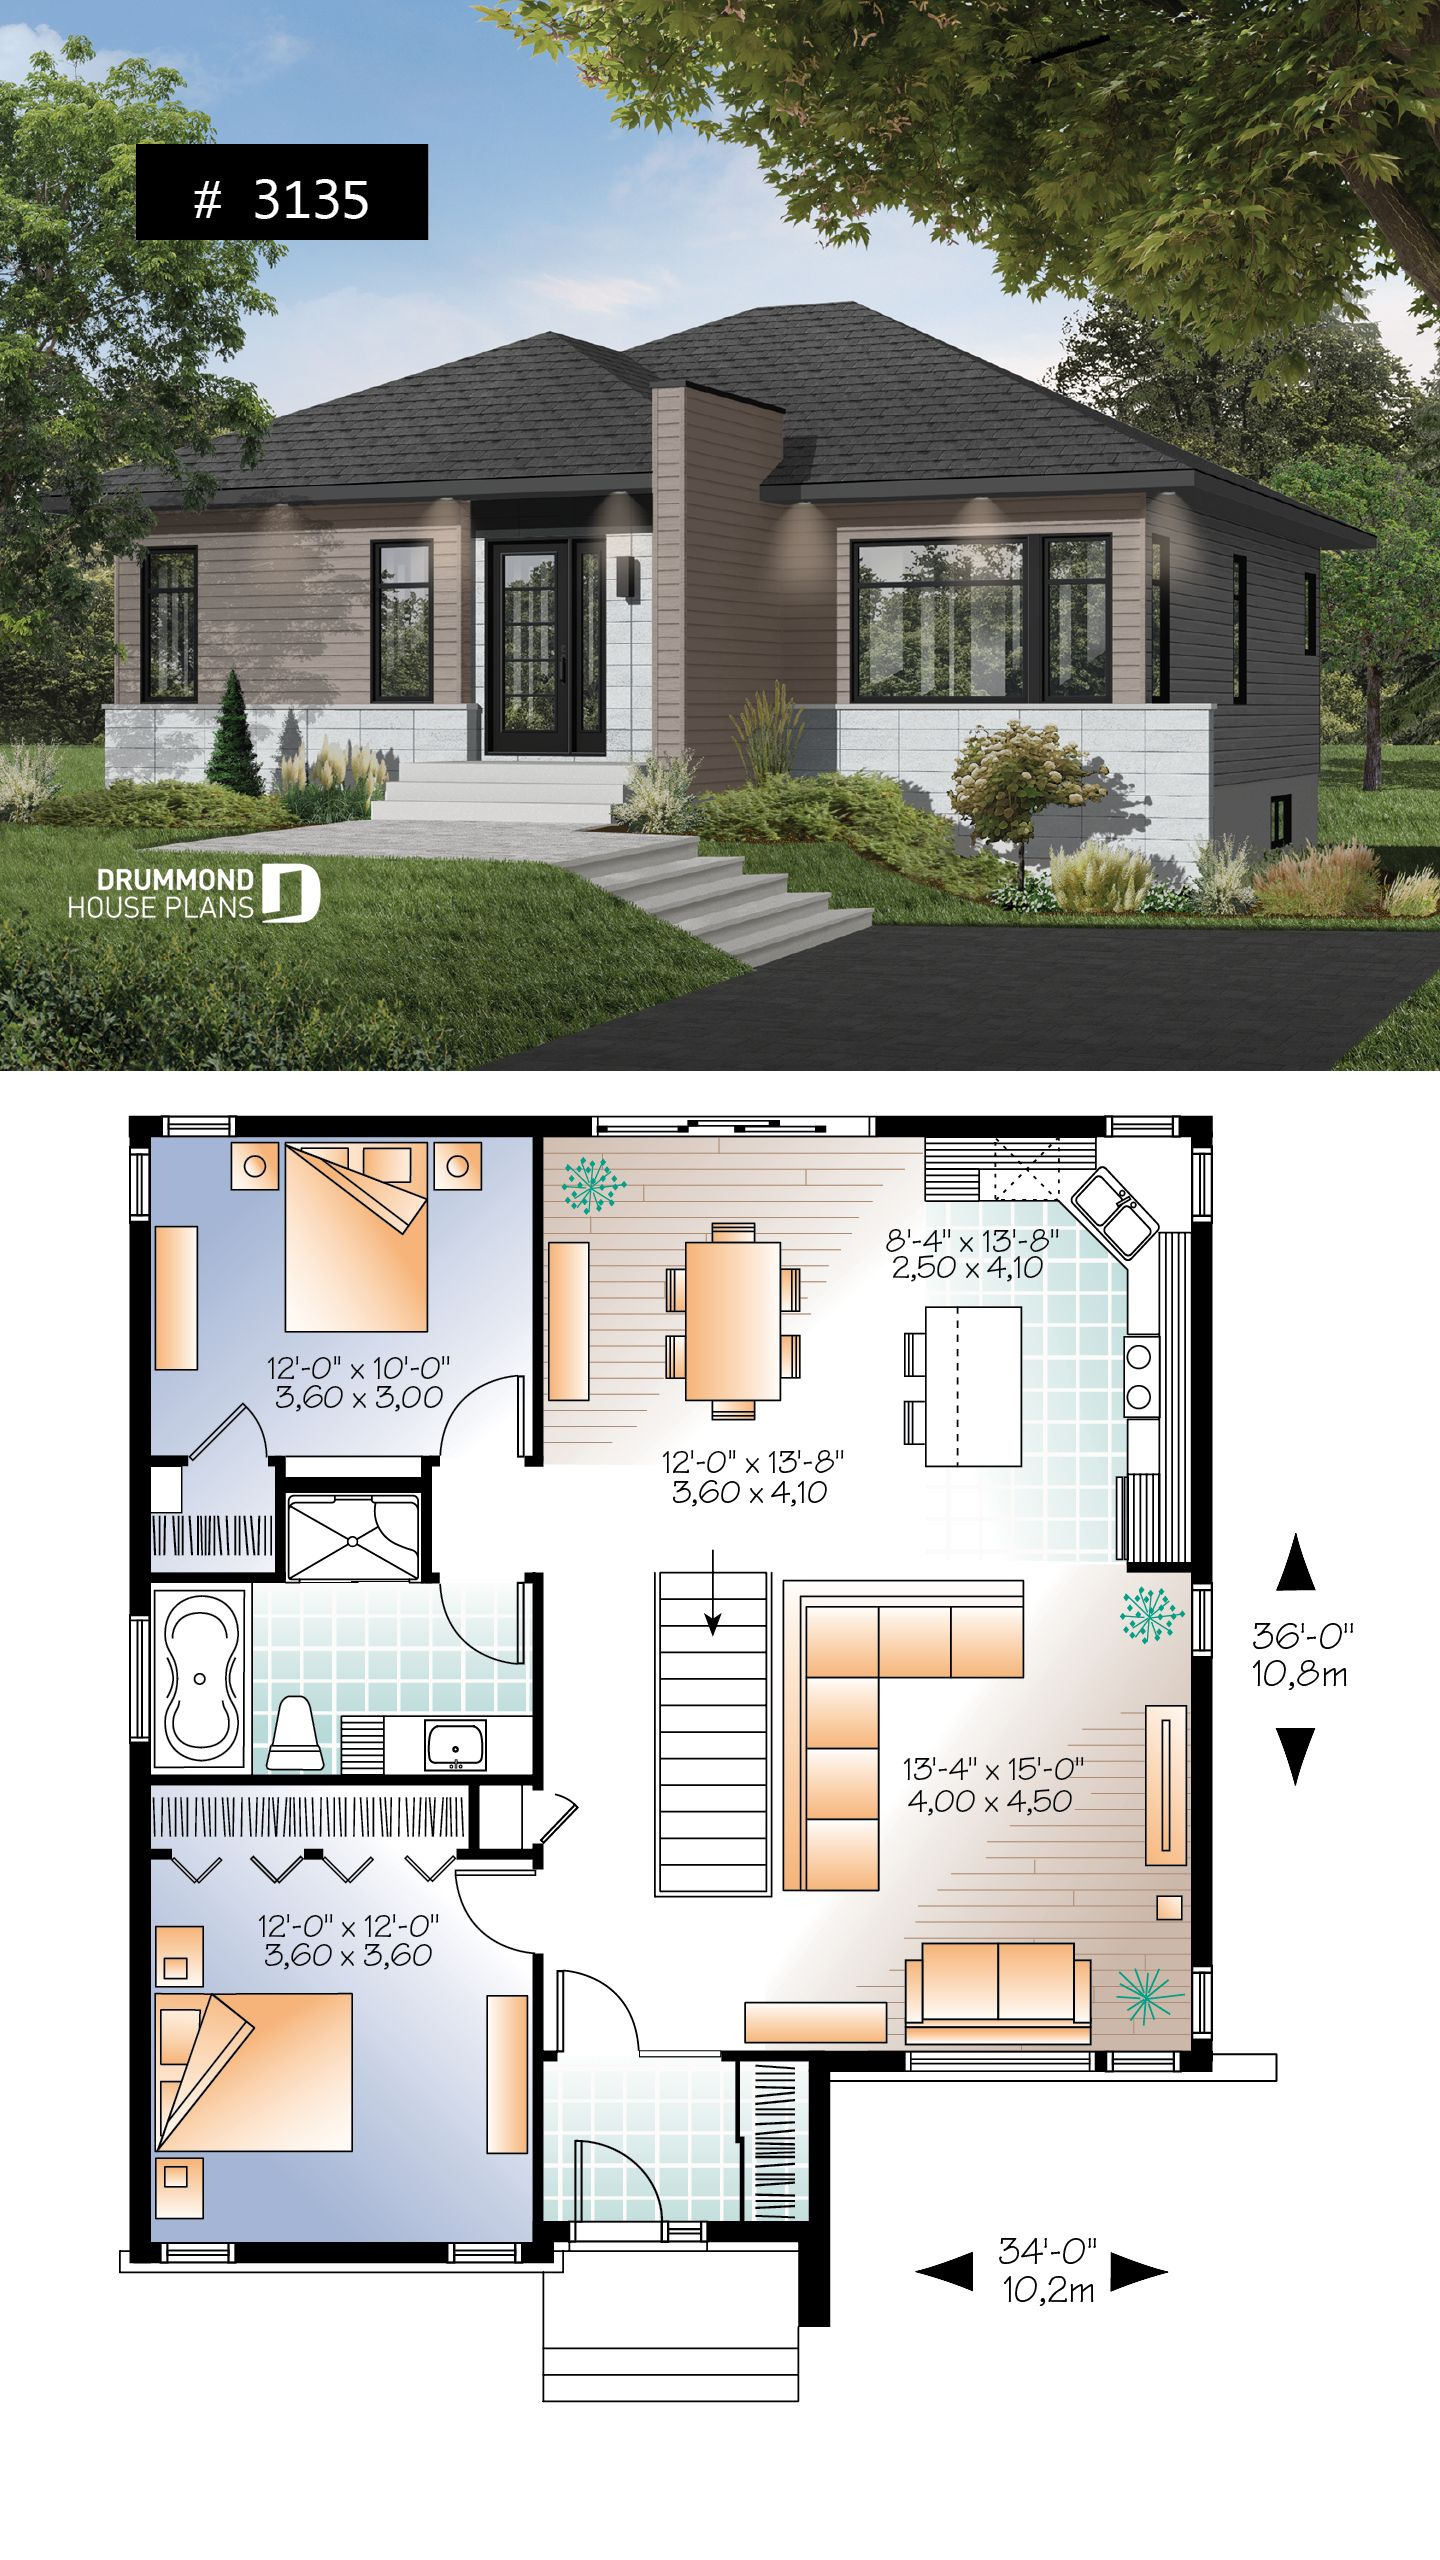 Open Concept Floor Plans for Small Homes Best Of House Plan Camelia No 3135